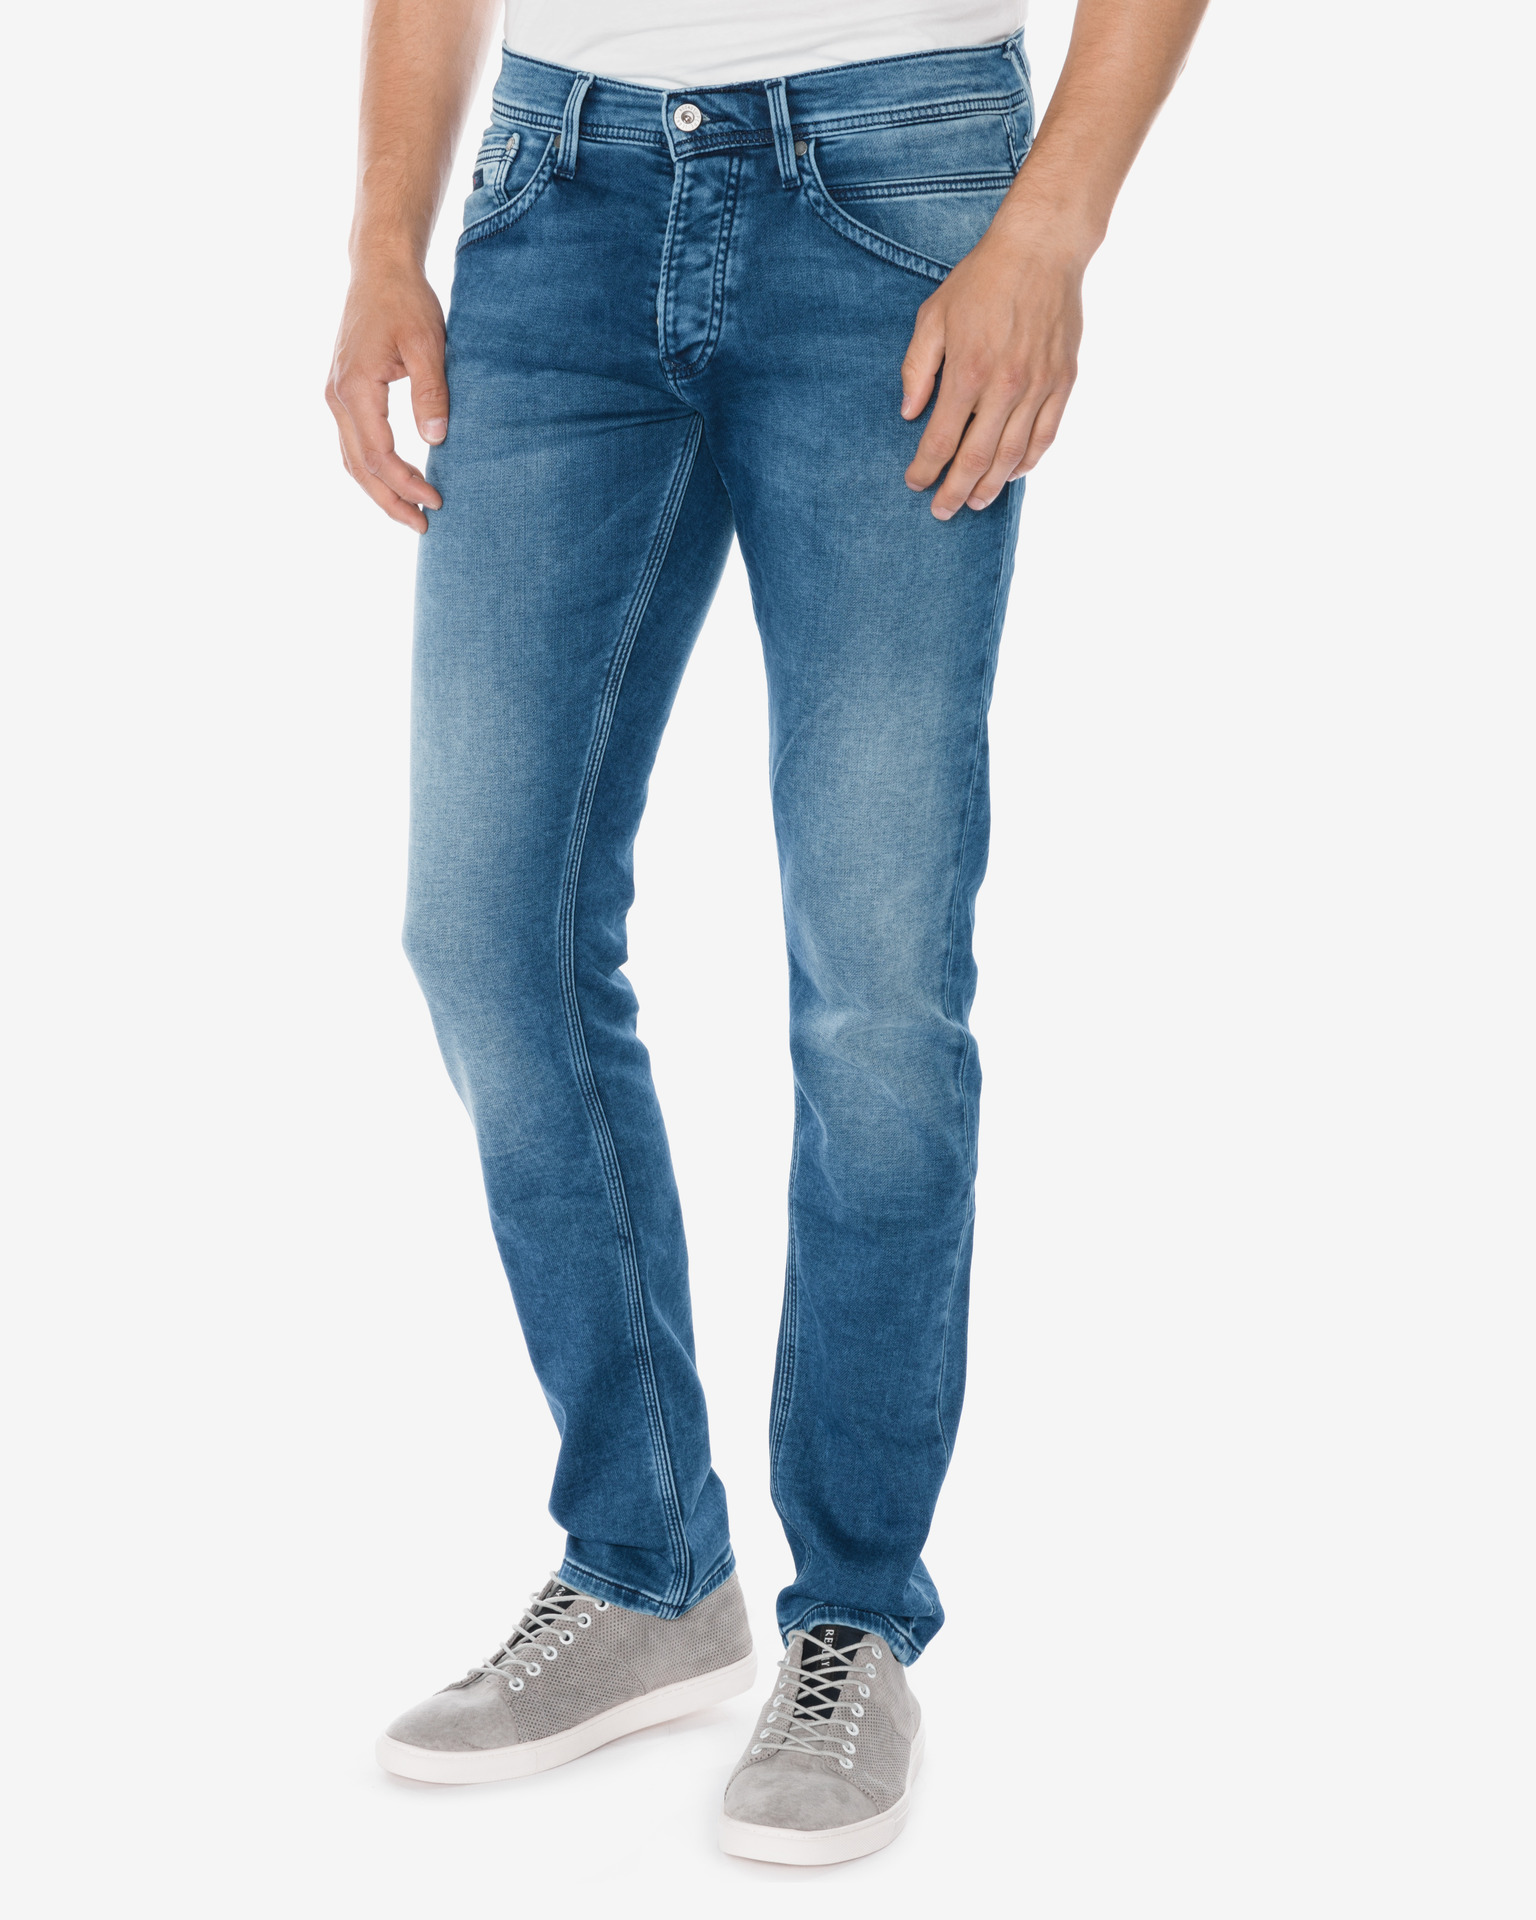 Pepe Jeans - Track Jeans  c354fd3f8b